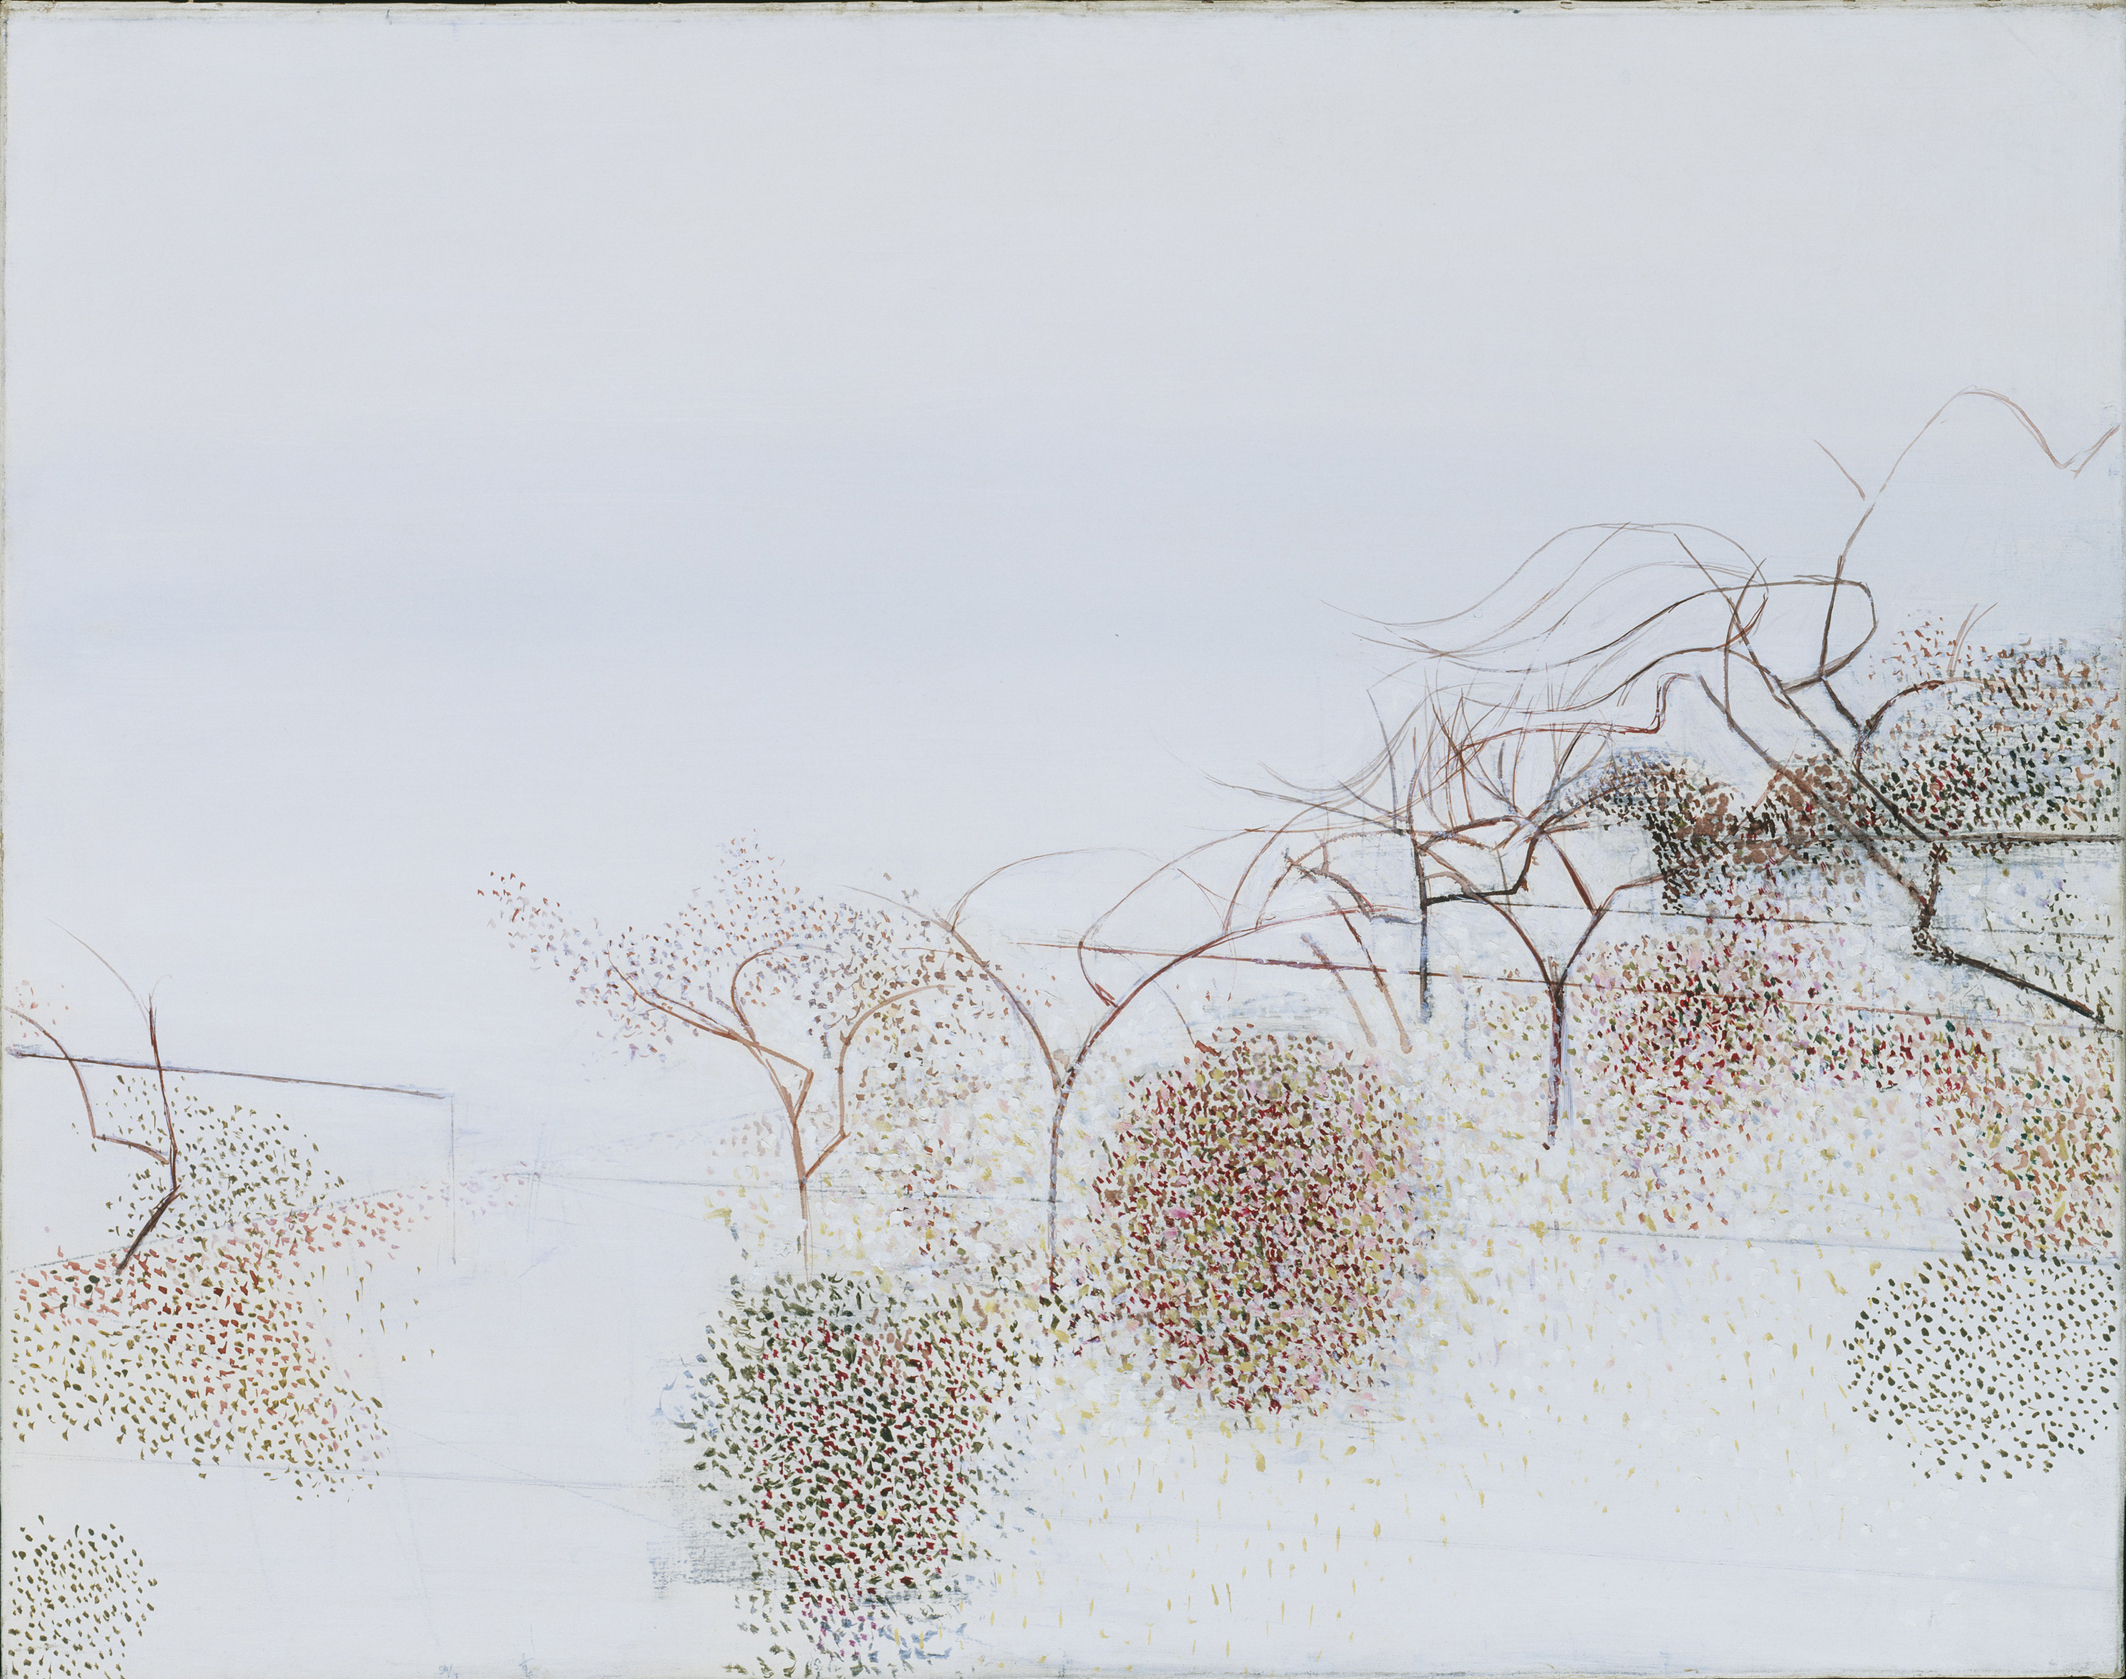 Victor Pasmore, The Gardens of Hammersmith No.2, c.1949, oil on canvas (©Tate London)